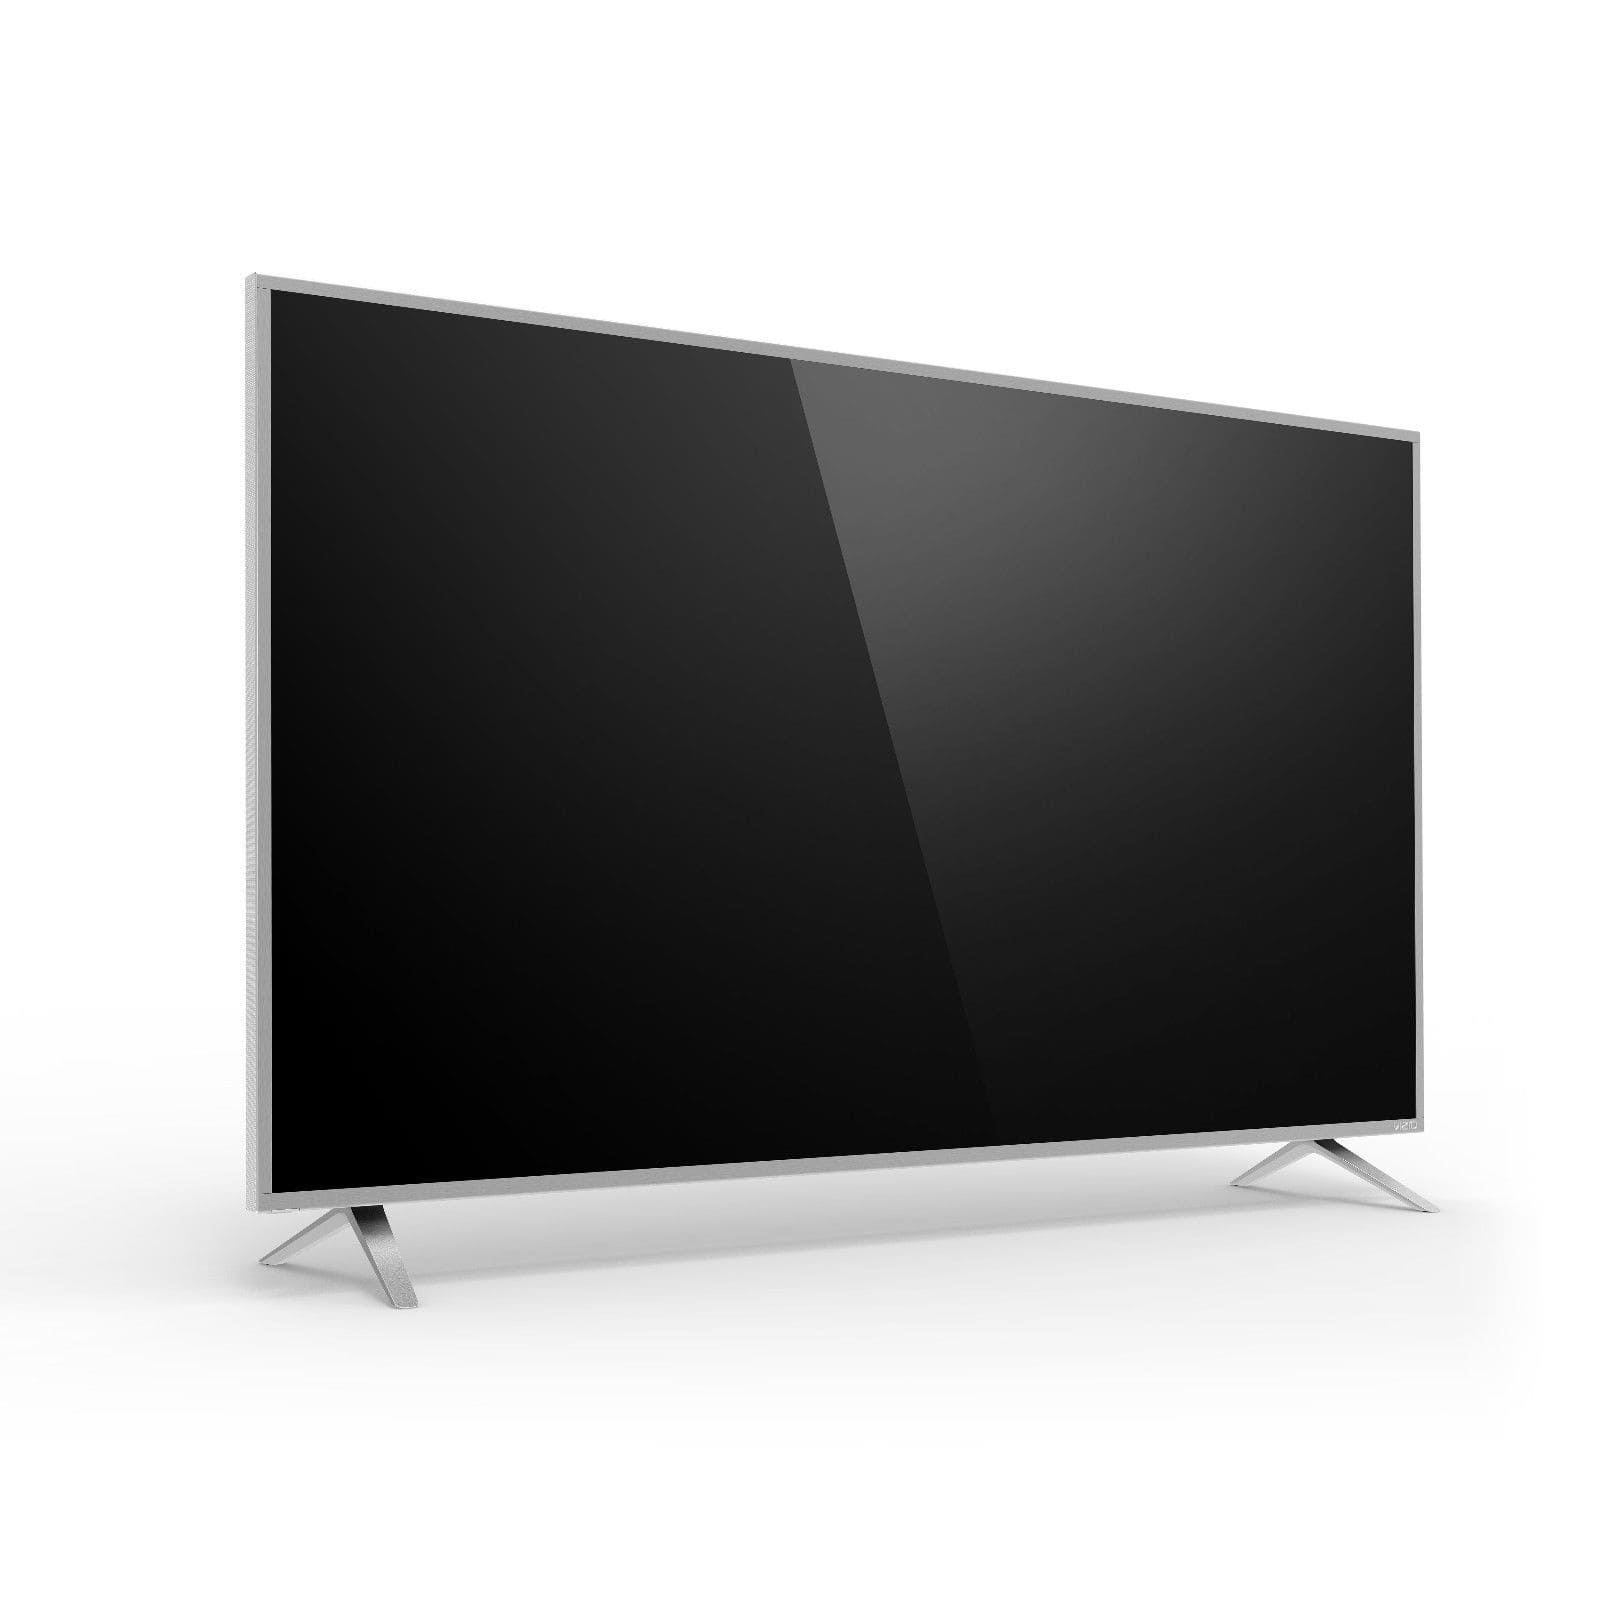 (AAFES/Military) Vizio Reference Series RS65-B2  65 in. 2160p Class Ultra HD HDR 240Hz 384 Active LED Zones Smart TV + a 5.1 sound system for 1999.99 $1999.99